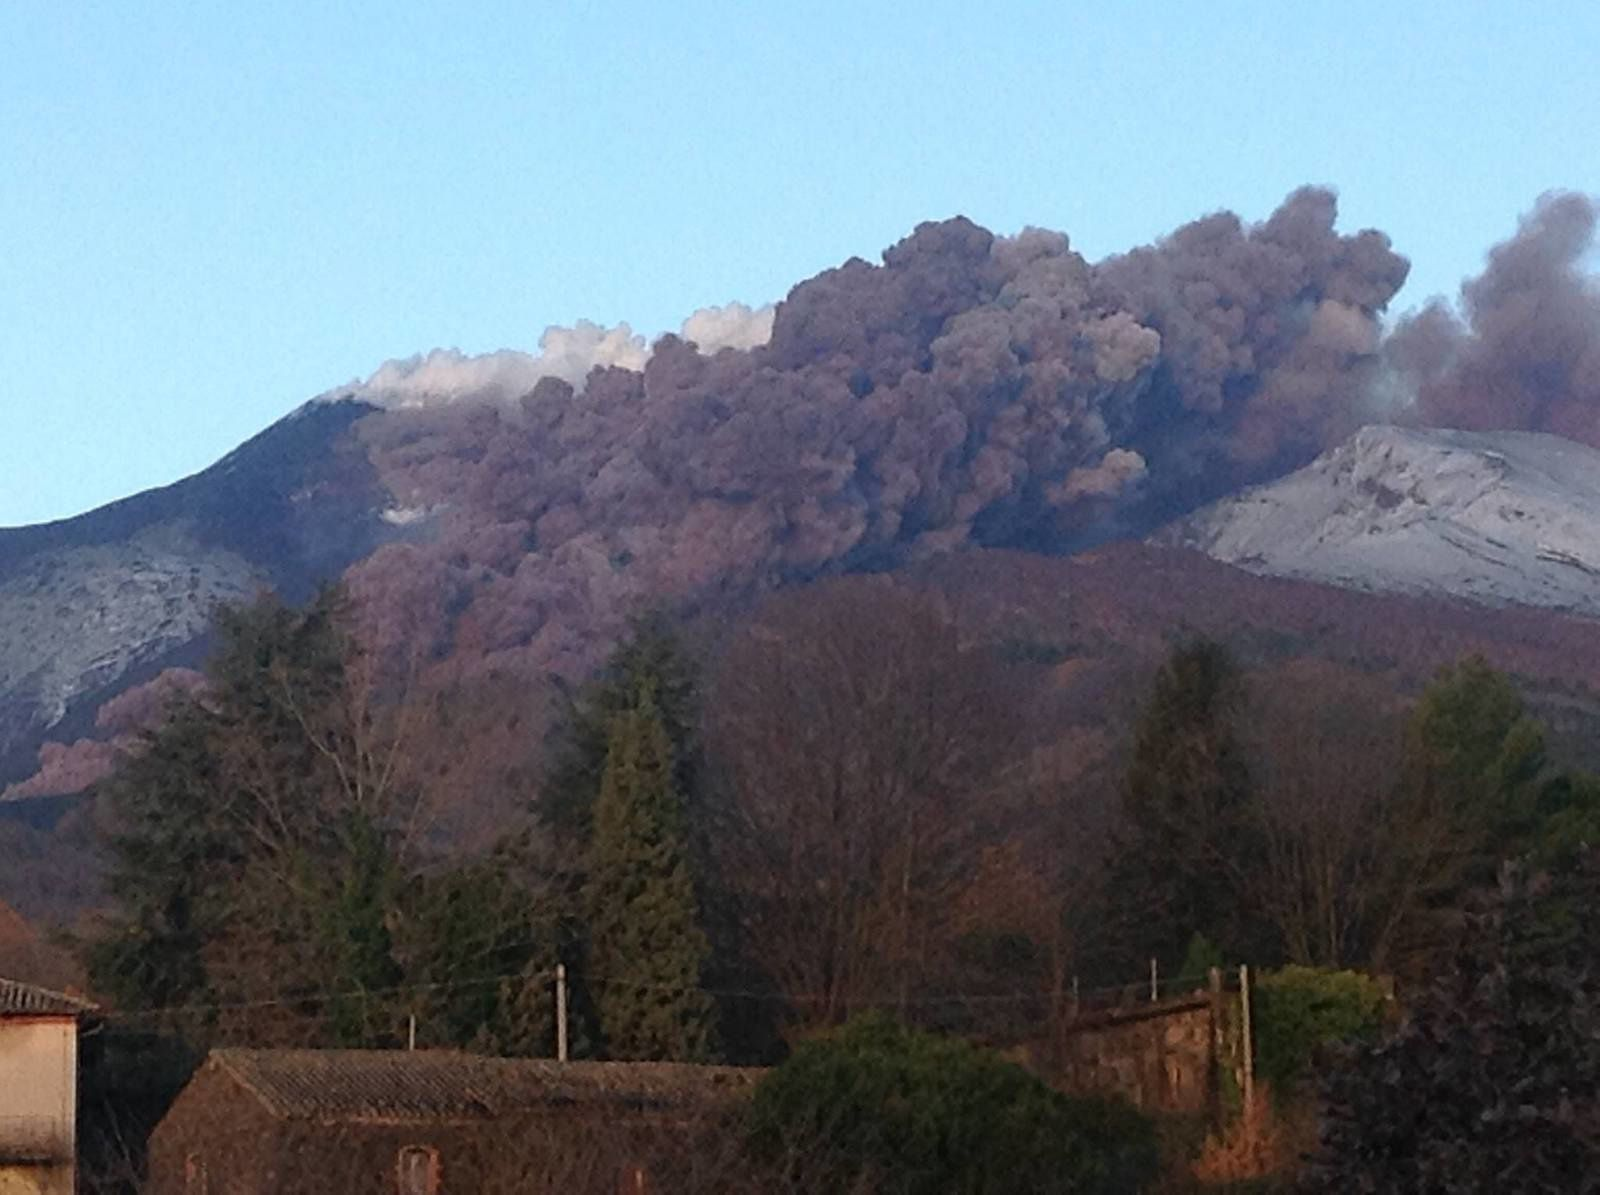 Etna - 11.02.2014 - collapse pyroclastic flow - photo Casa di paglia Felcerossa Permacultura sull'Etna